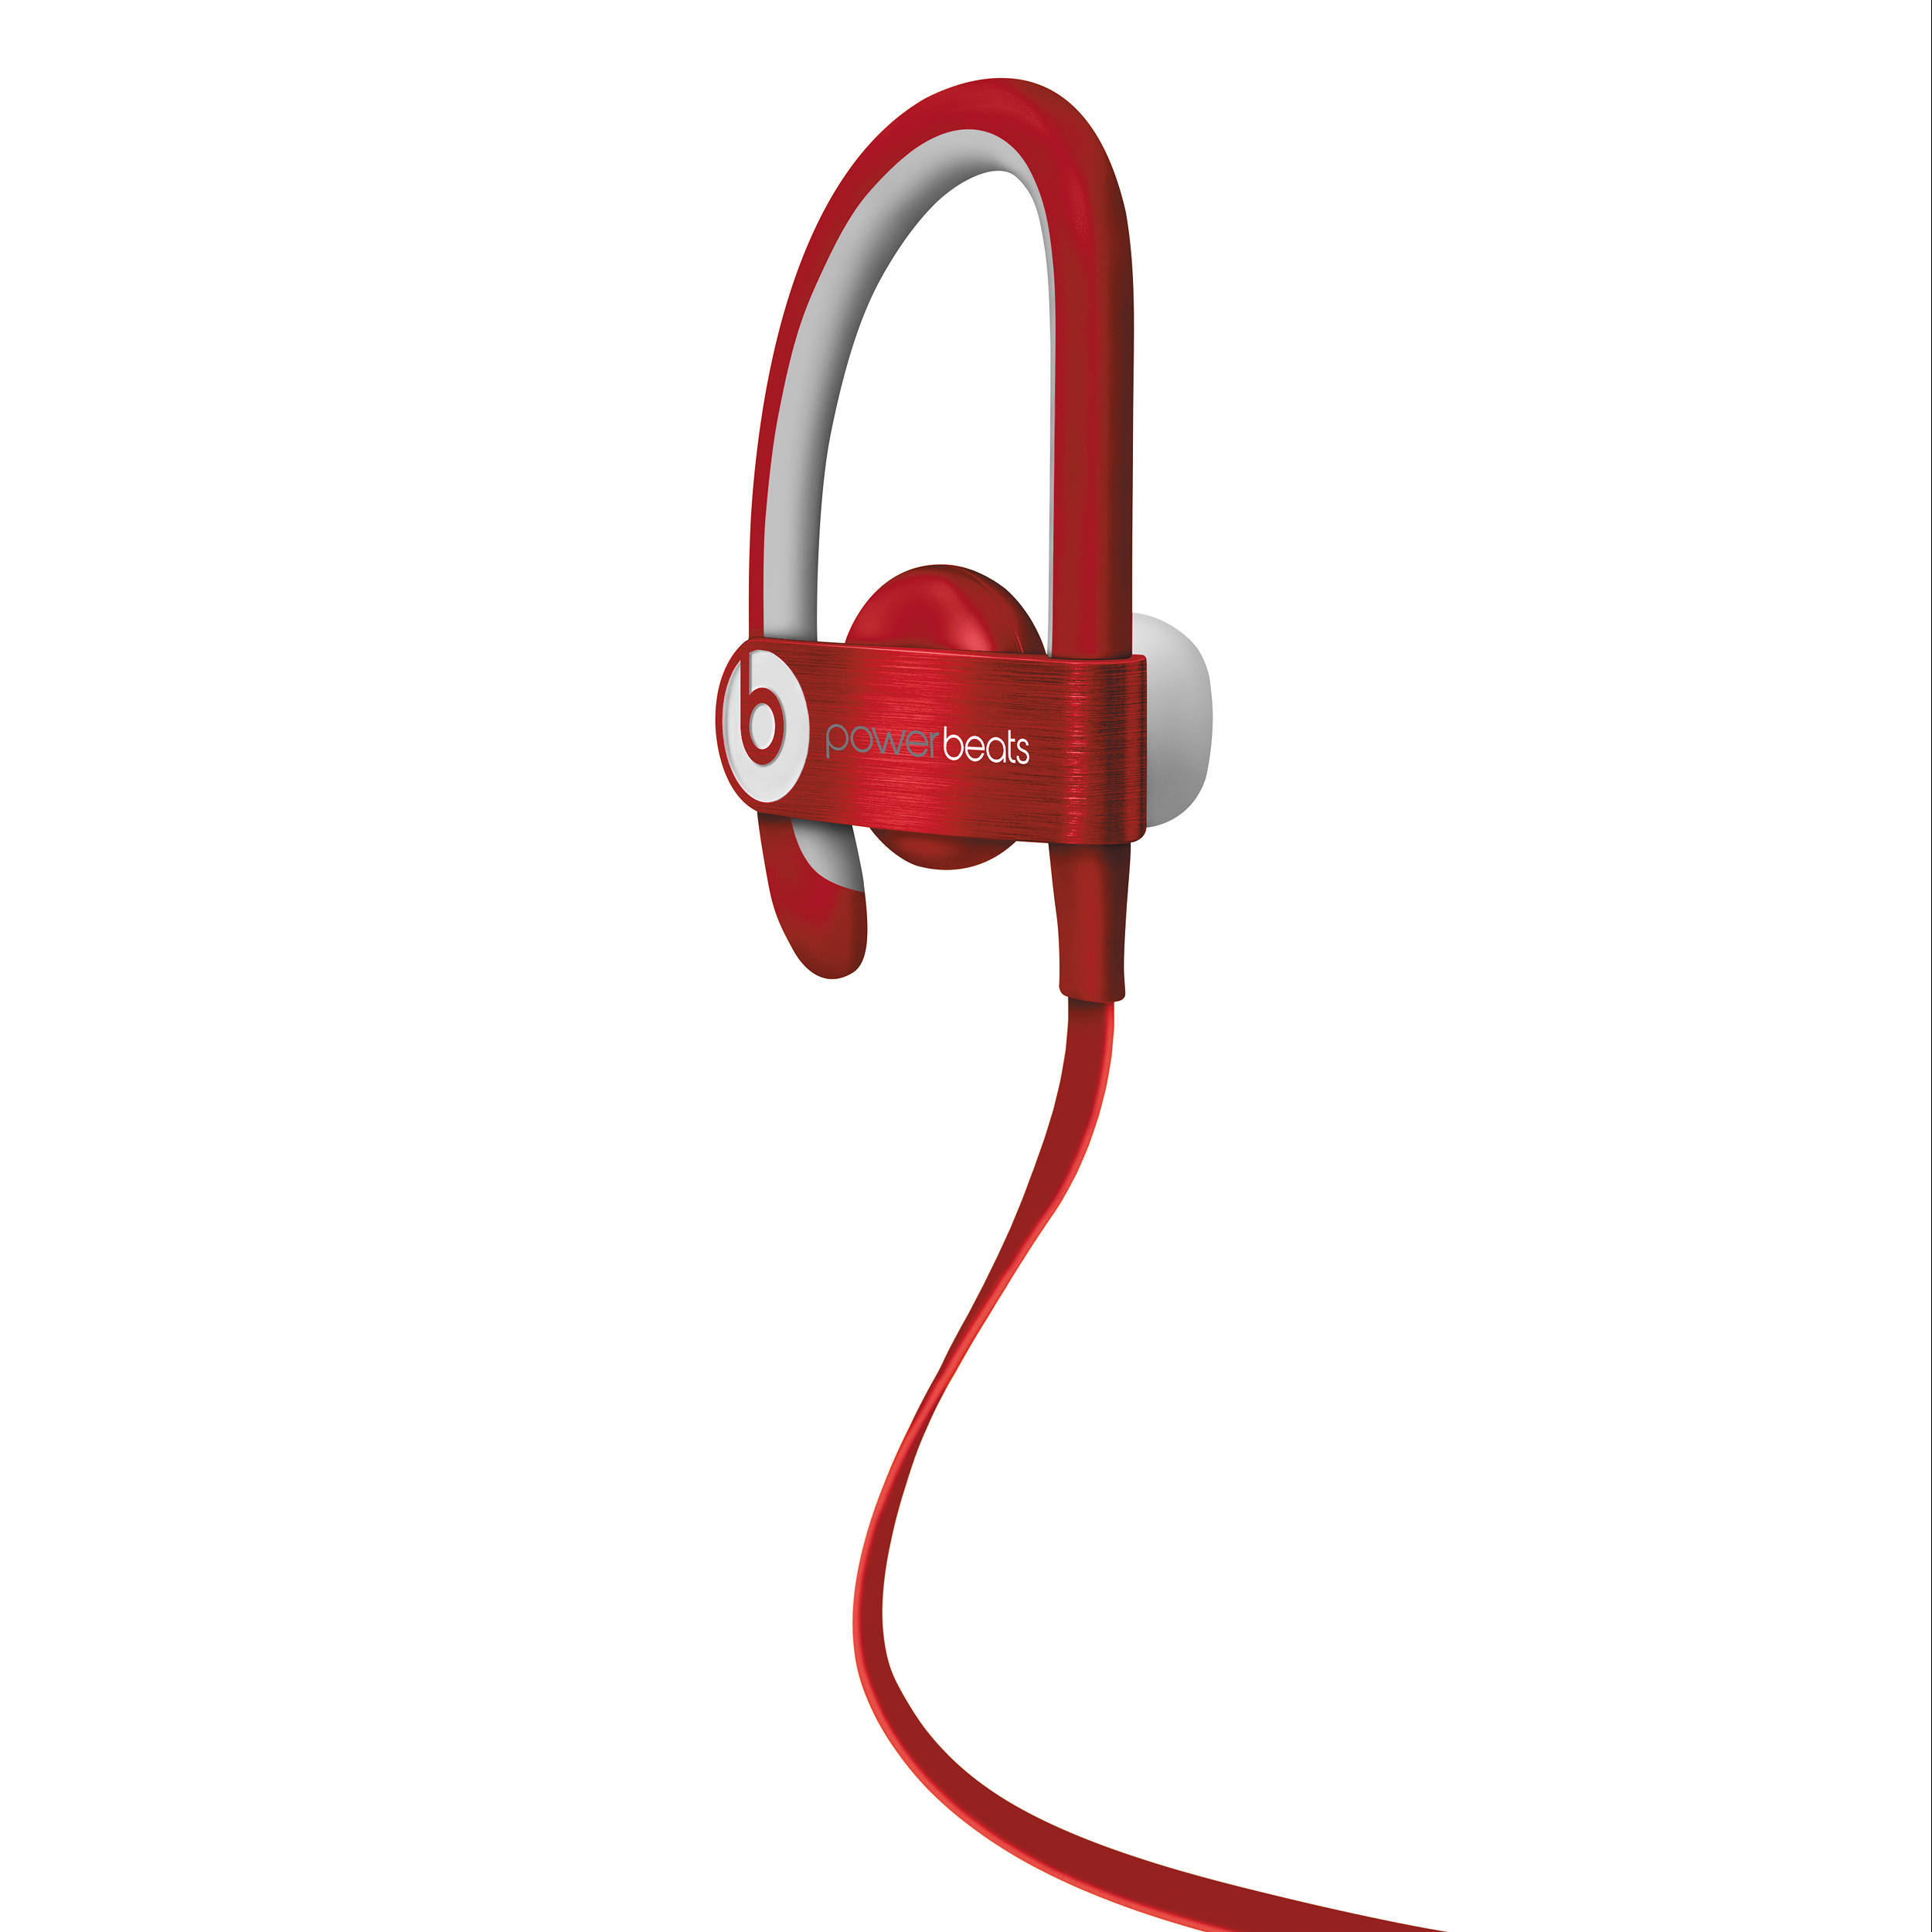 cfb2db4601b Beats by Dr. Dre Powerbeats2 Wired Earbuds (Red) MH782AM/A B&H